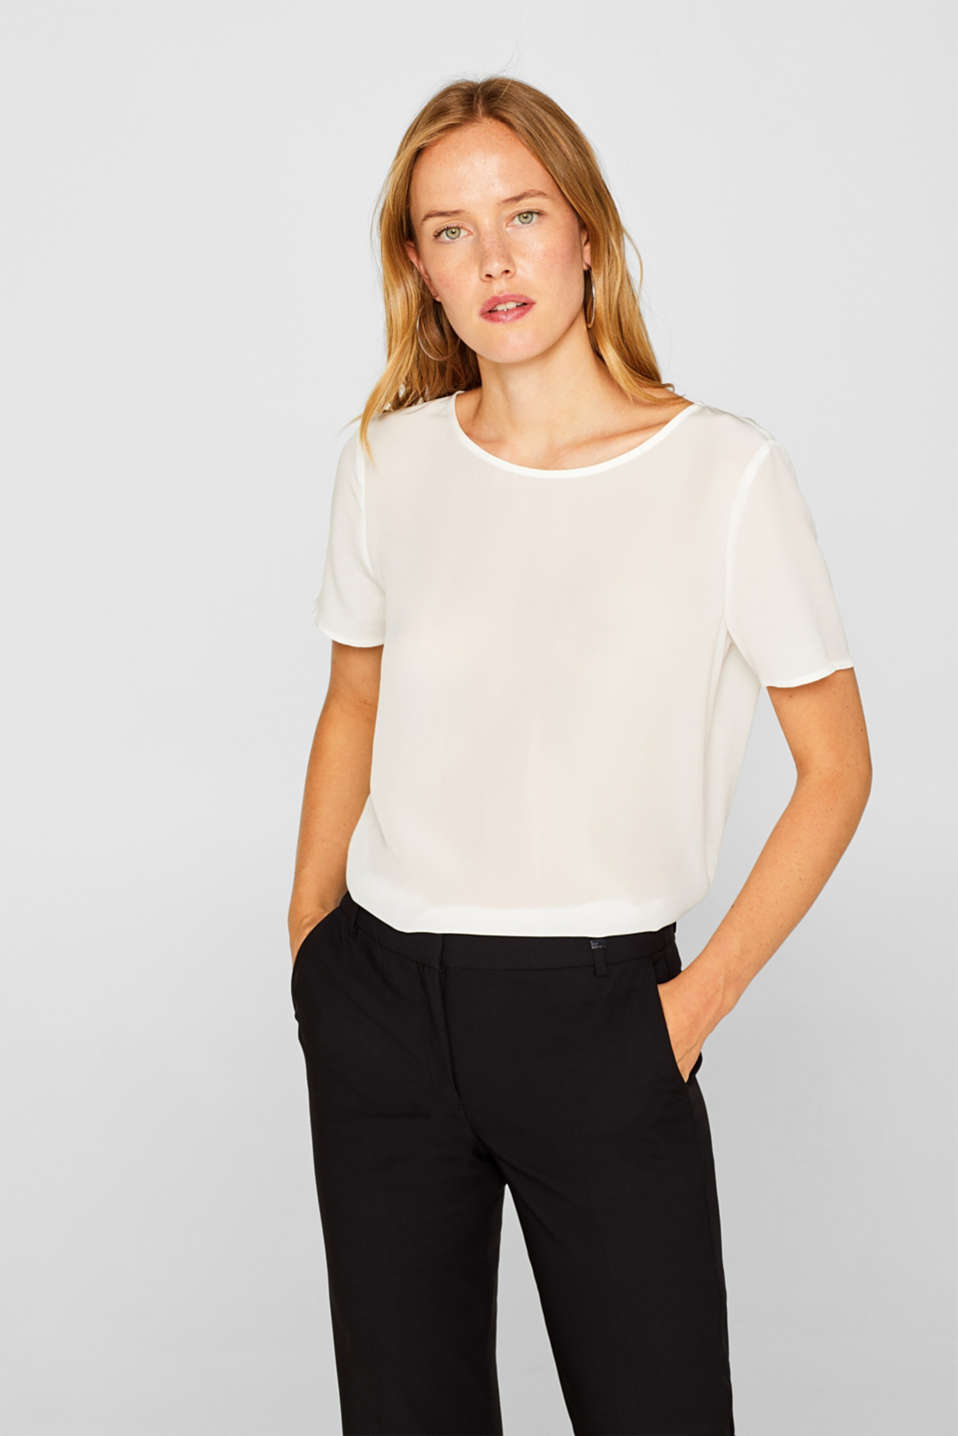 Esprit - Top con look sencillo, 100% seda